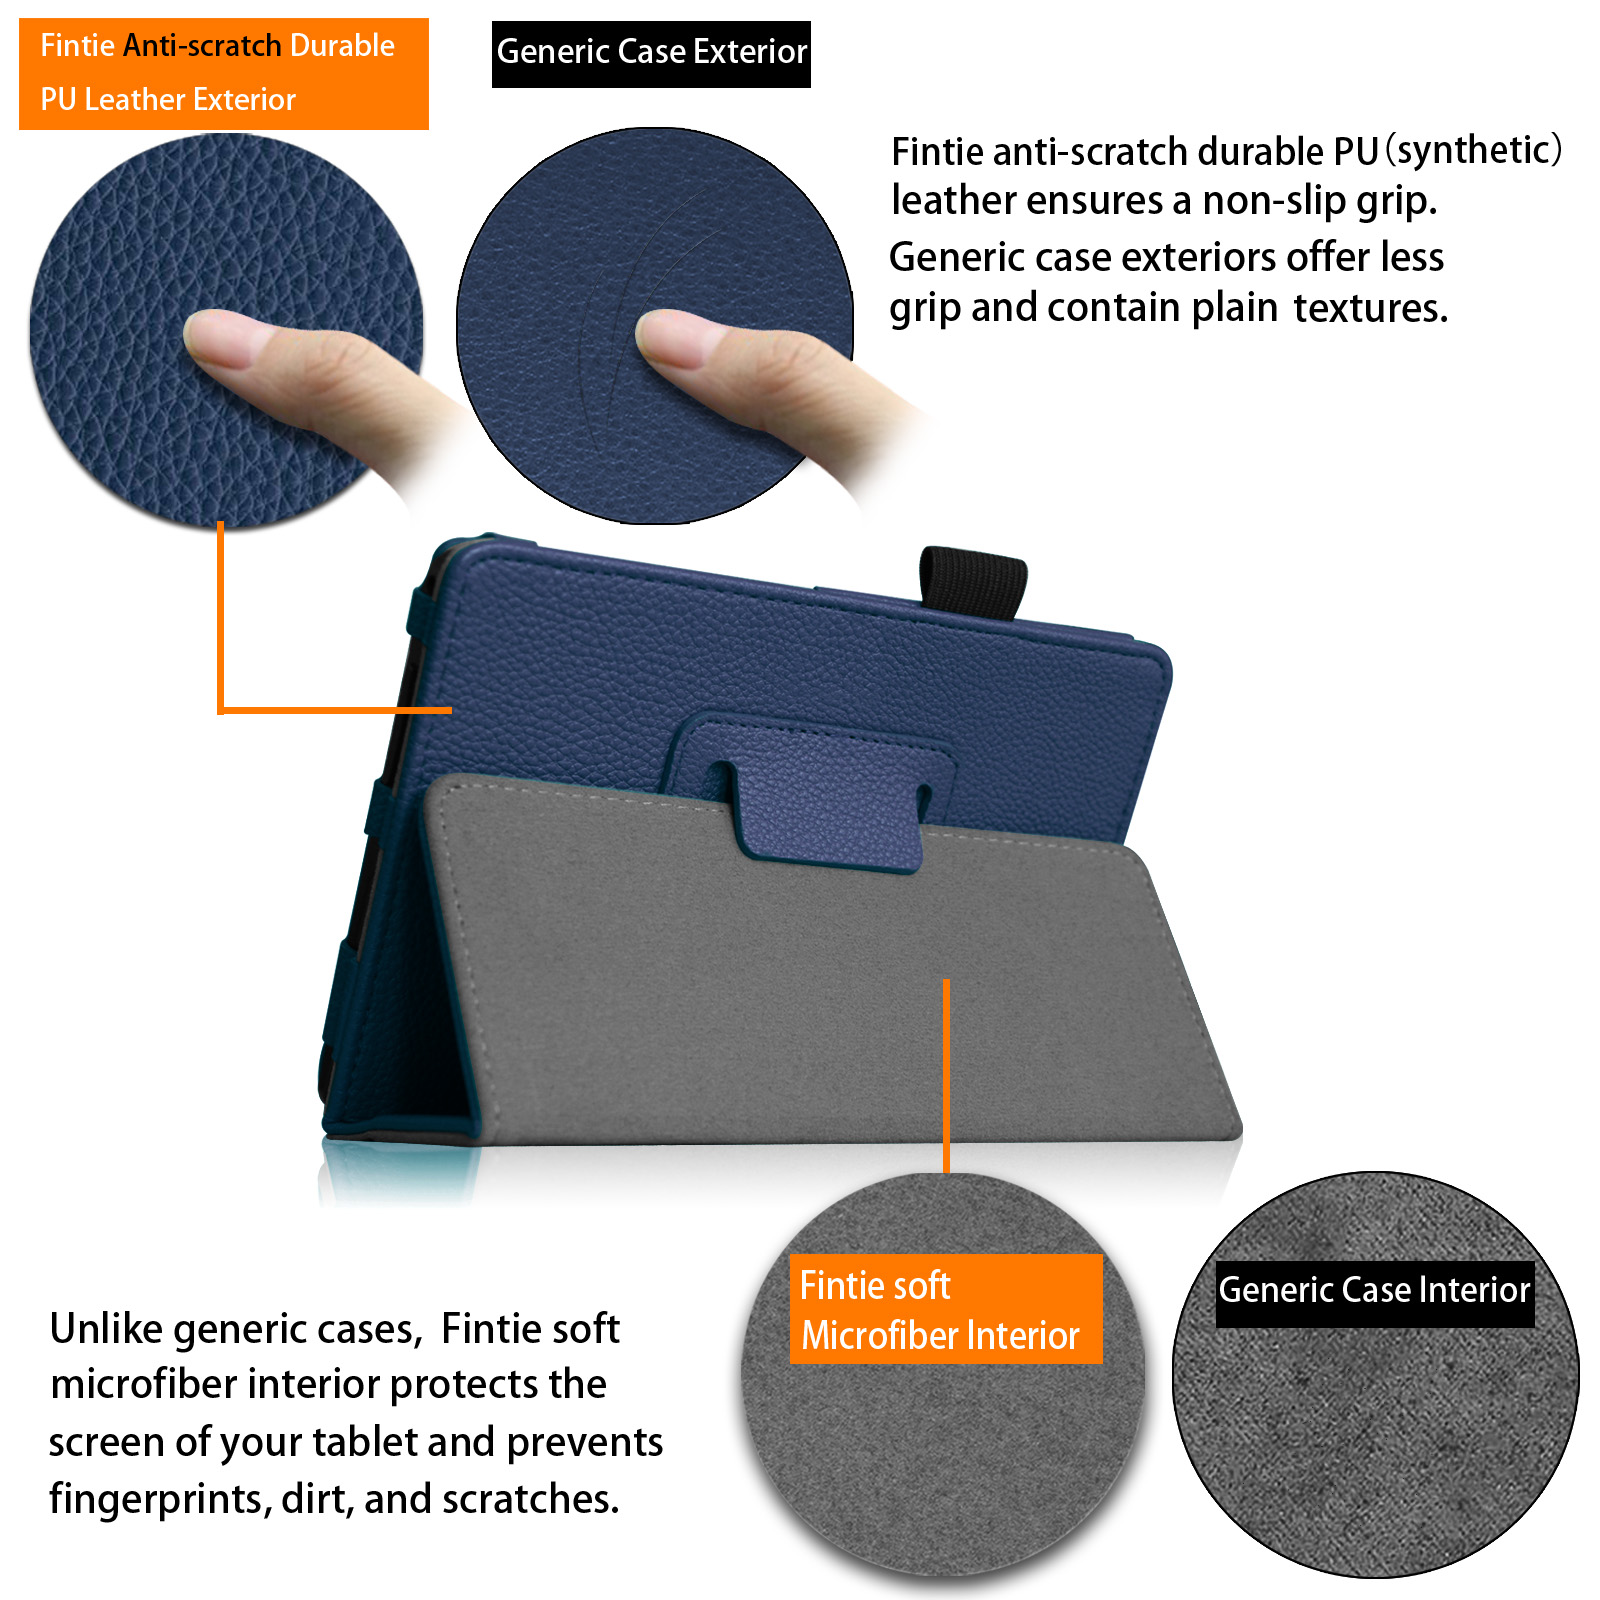 Fintie Sprint Slate 8 Tablet (AQT80) Case - [Slim Fit] Premium PU Leather  Folio Cover with Stylus Holder, Navy